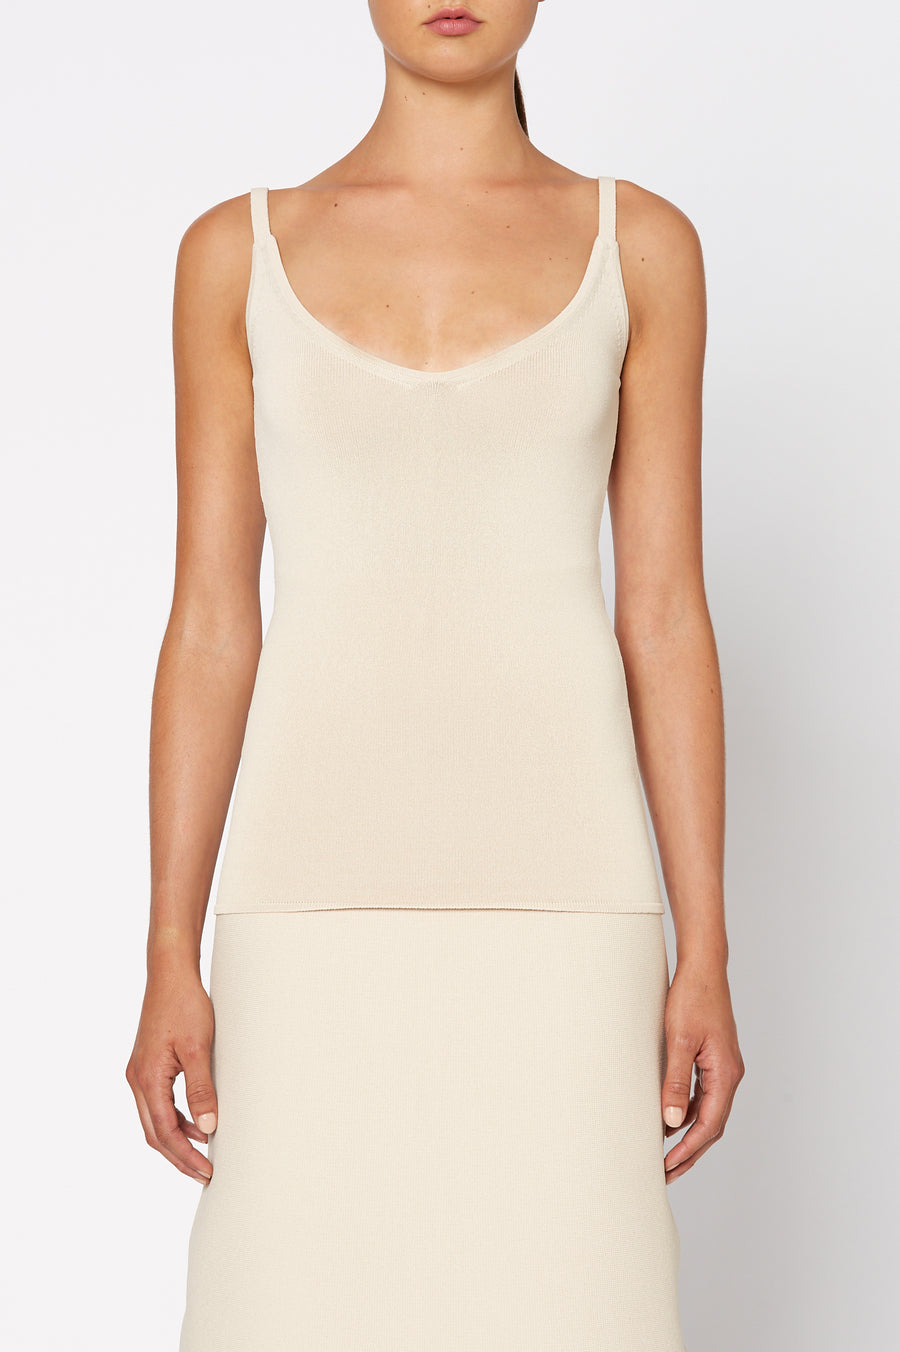 Crepe Knit Camisole, scoop v neckline, thin shoulder straps, Color Papiro